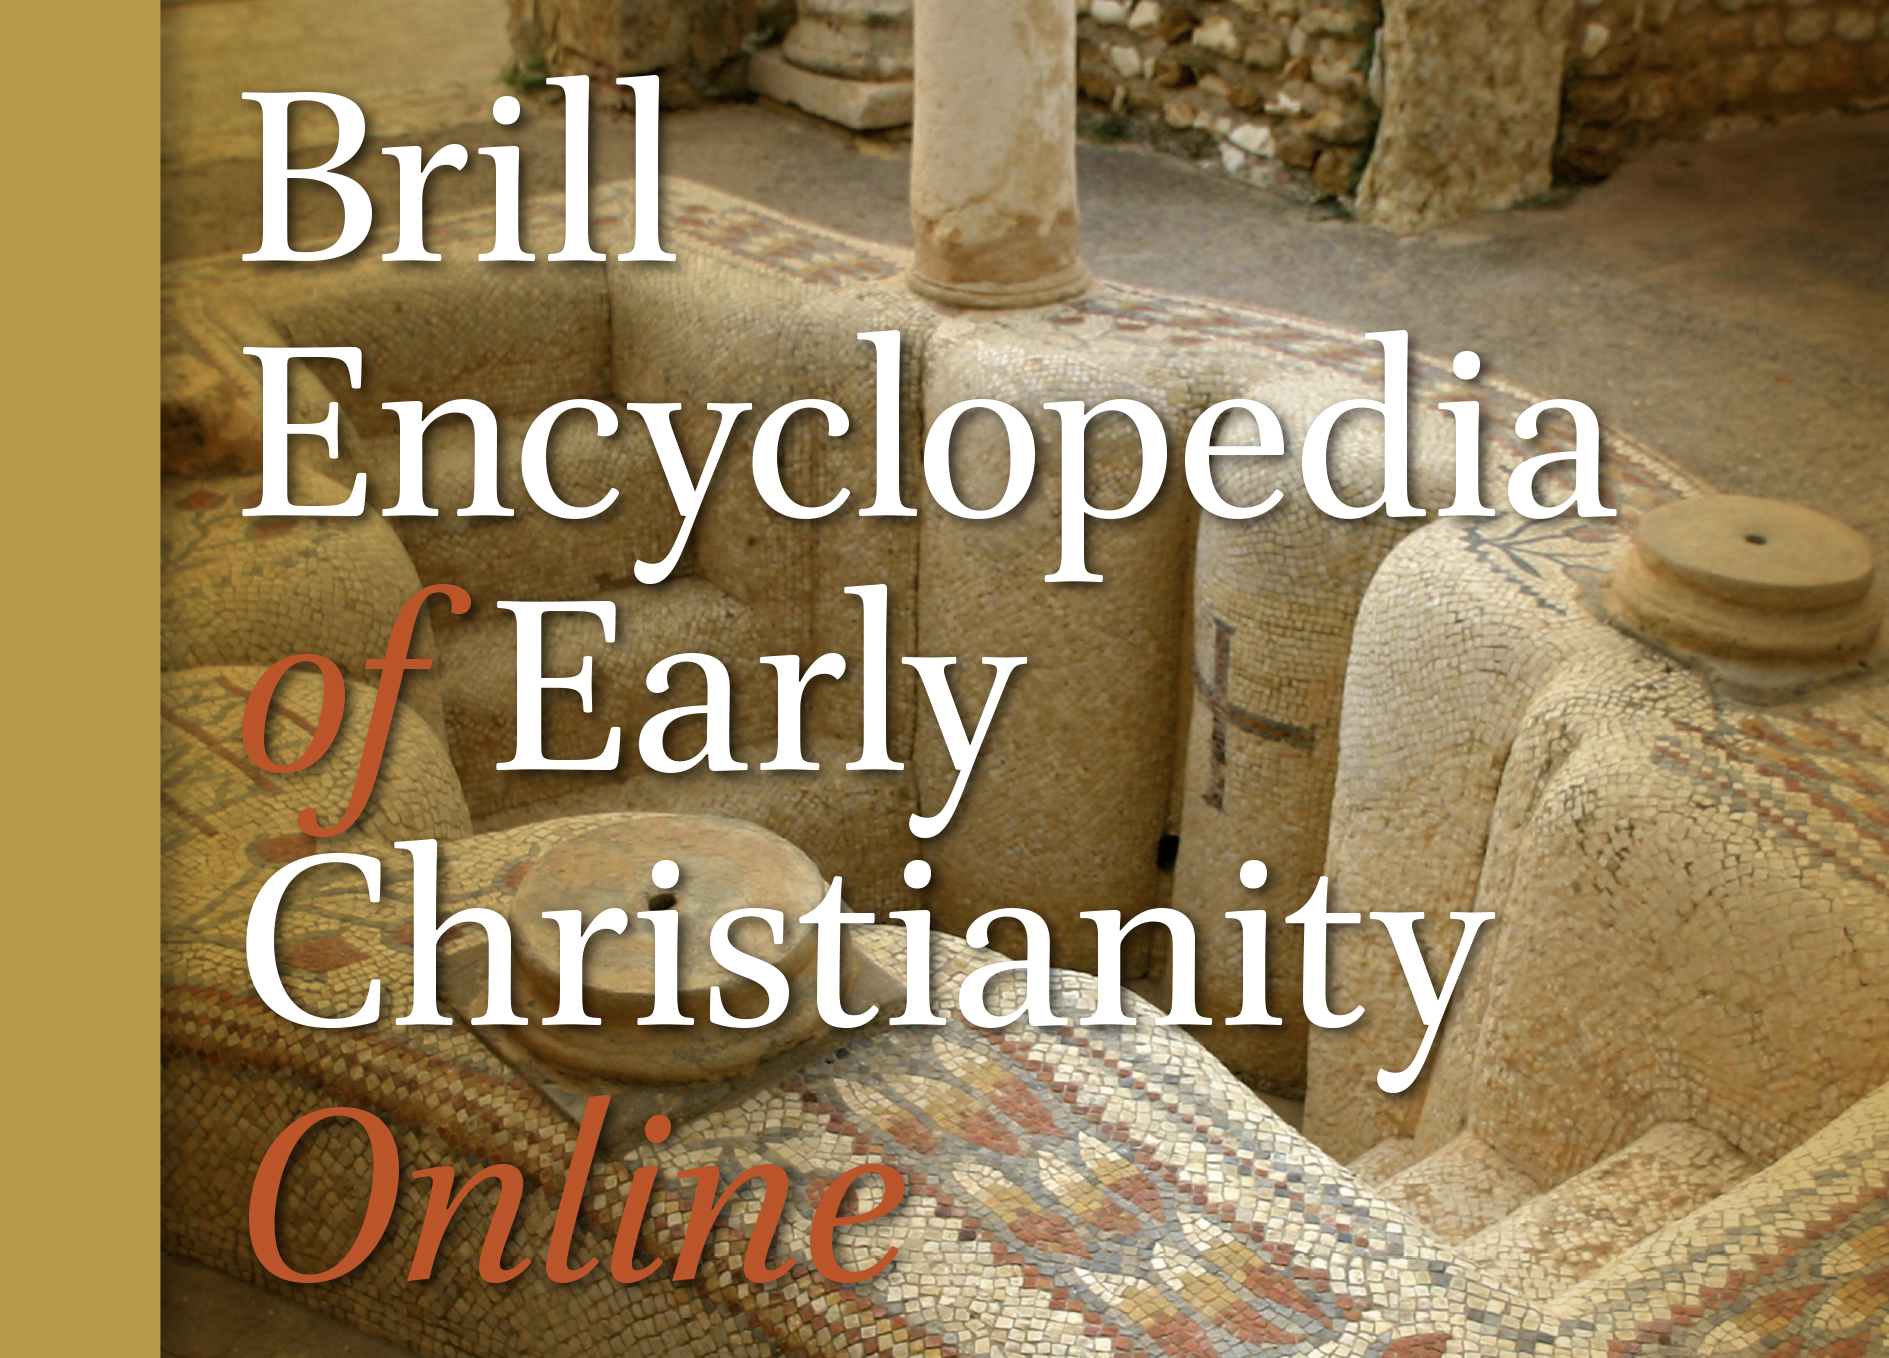 New online reference work: Brill Encyclopedia of Early Christianity